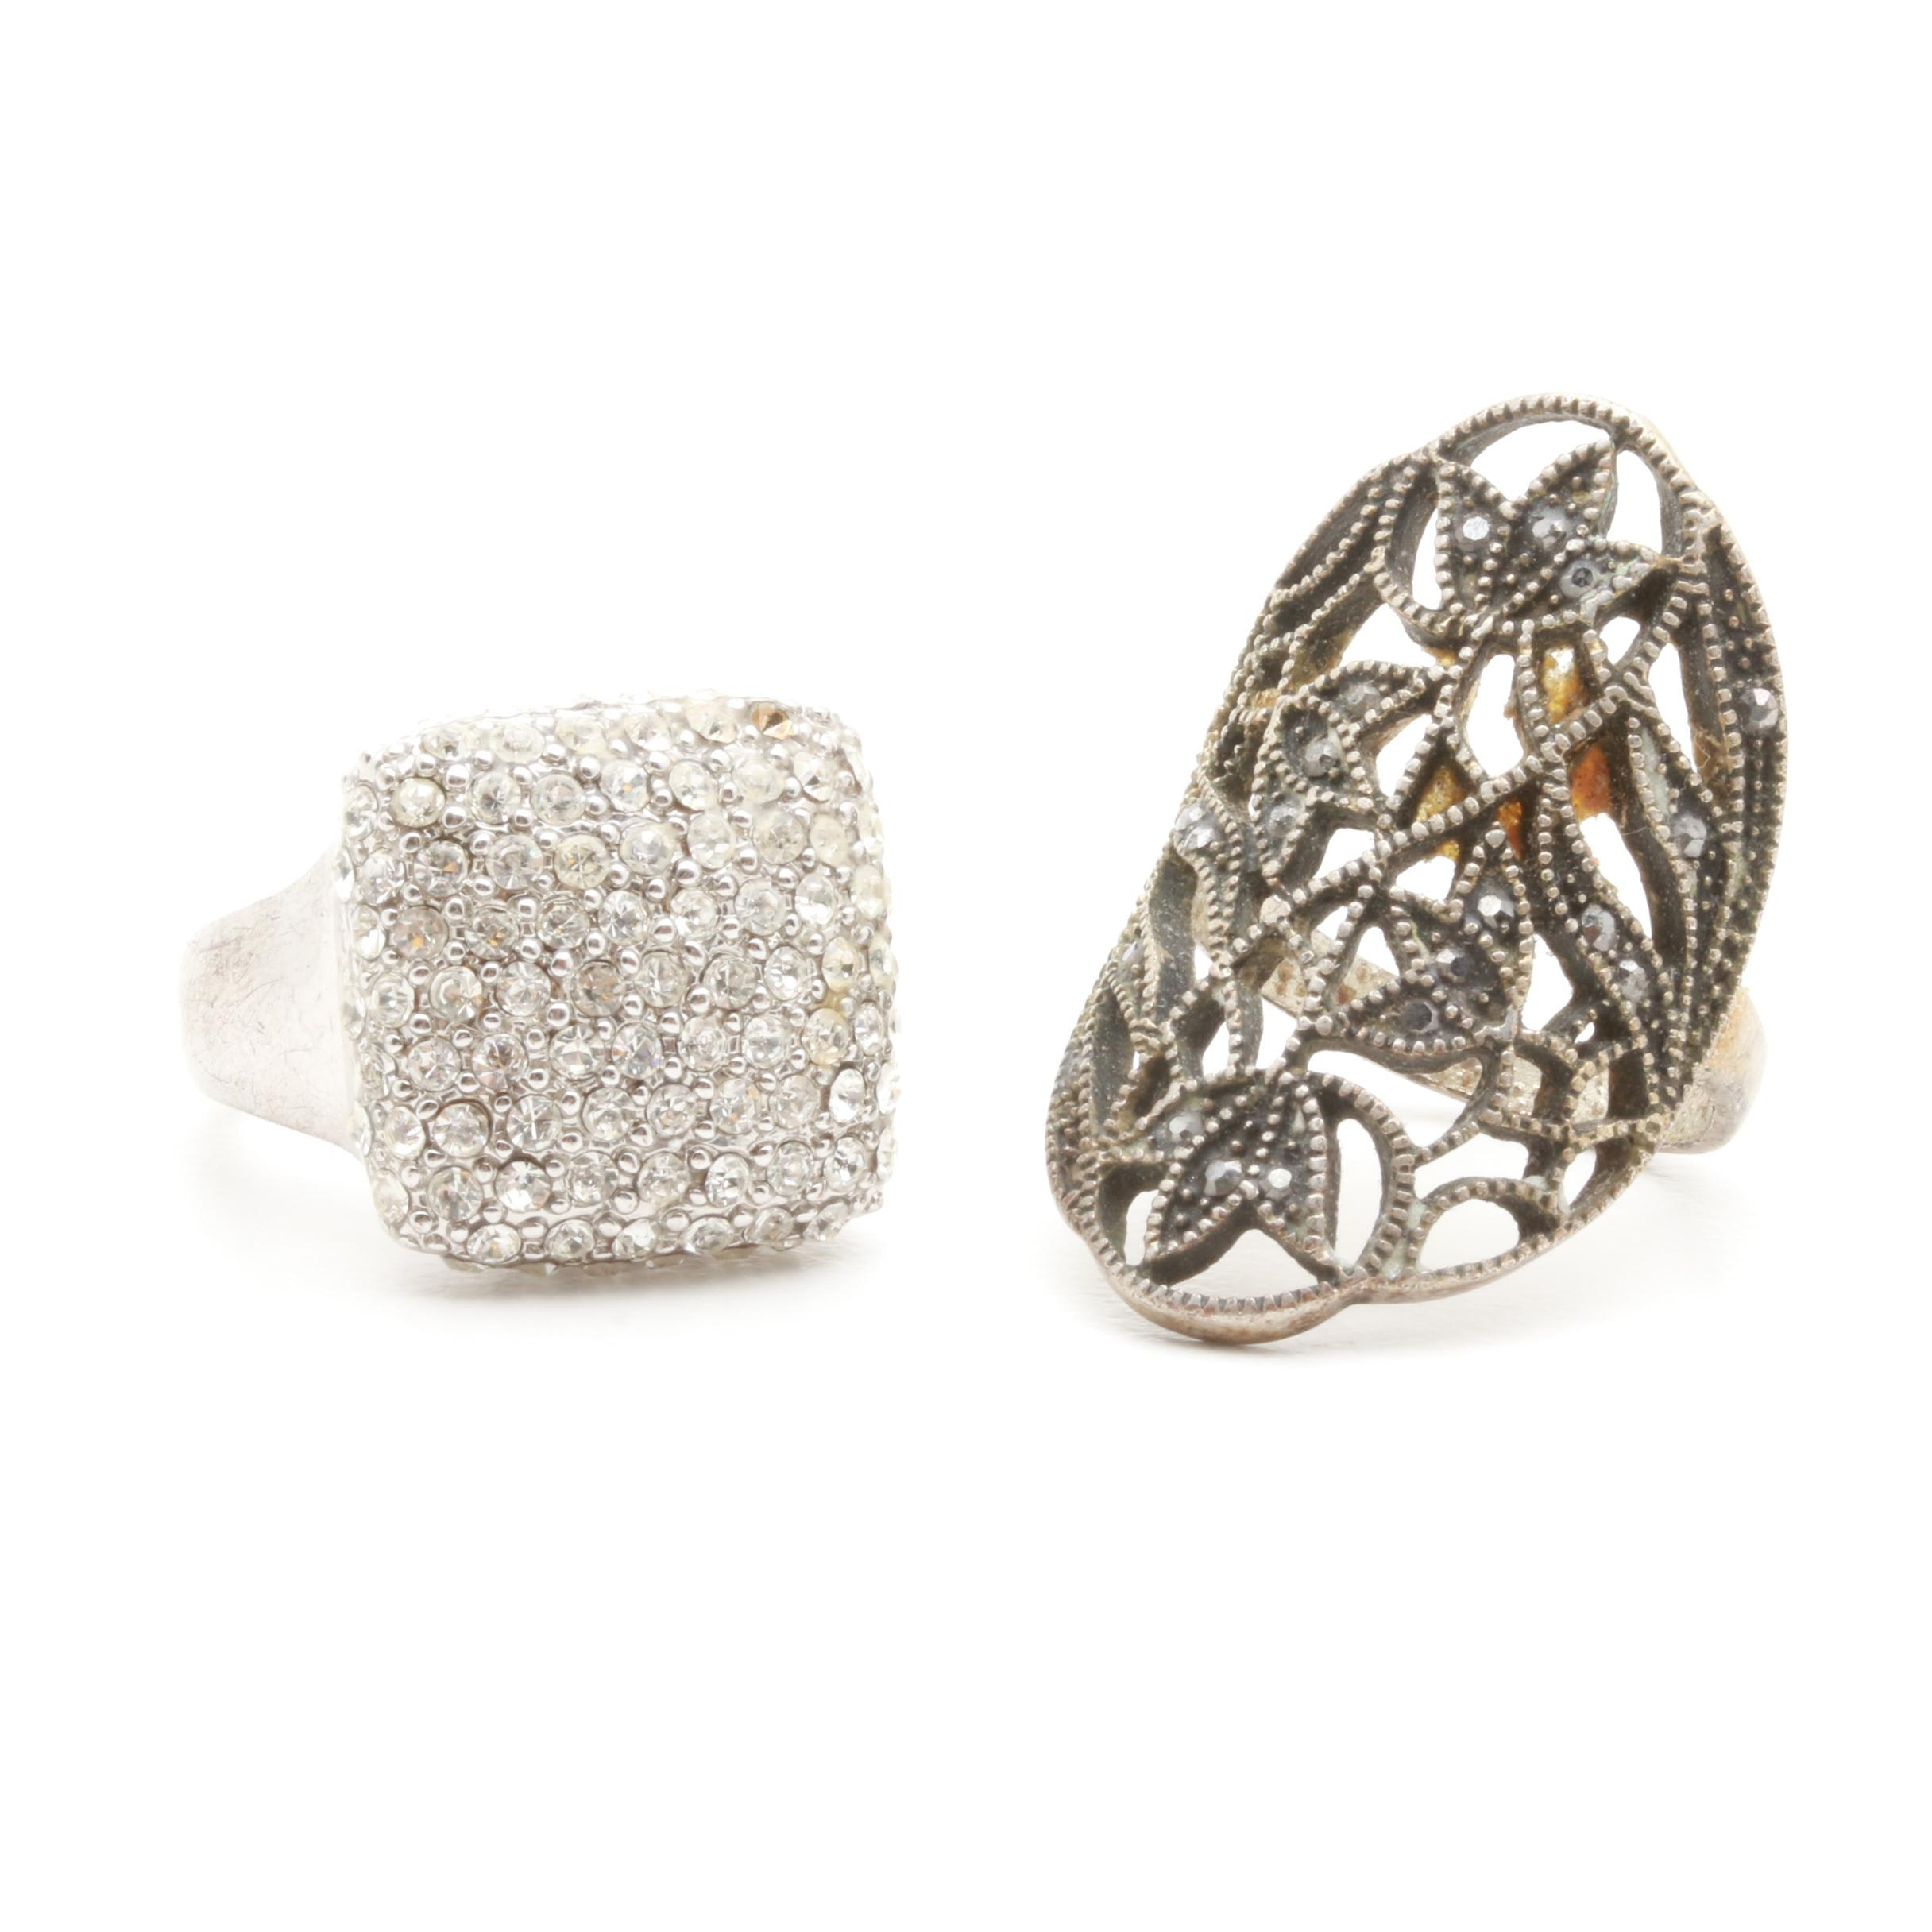 Silver-Tone Ring Selection Including Foilbacks and Marcasite